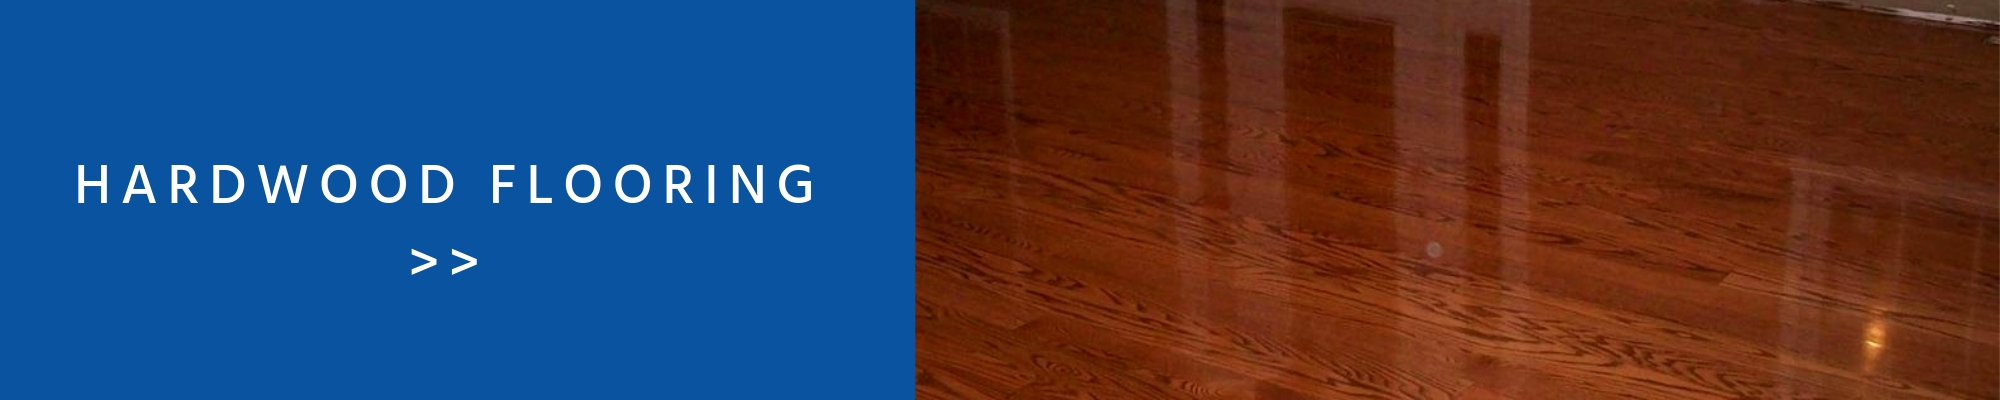 Click here to learn more about our hardwood flooring!